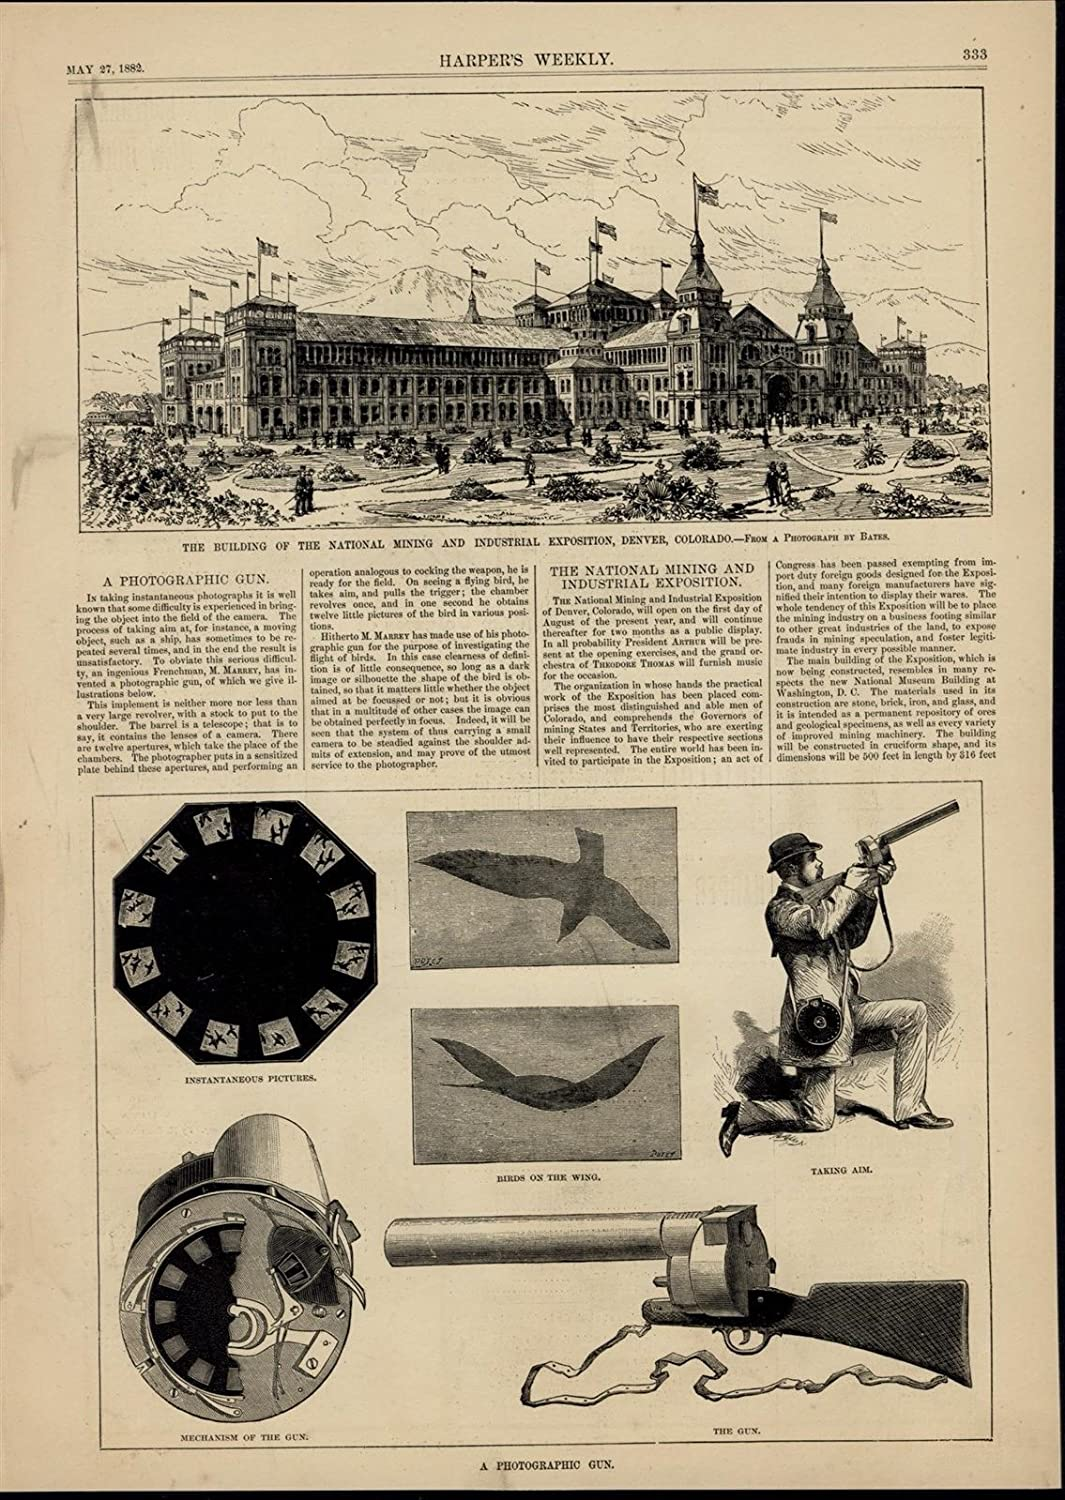 NATIONAL MINING AND INDUSTRIAL EXPOSITION BUILDING ARCHITECTURE DENVER COLORADO